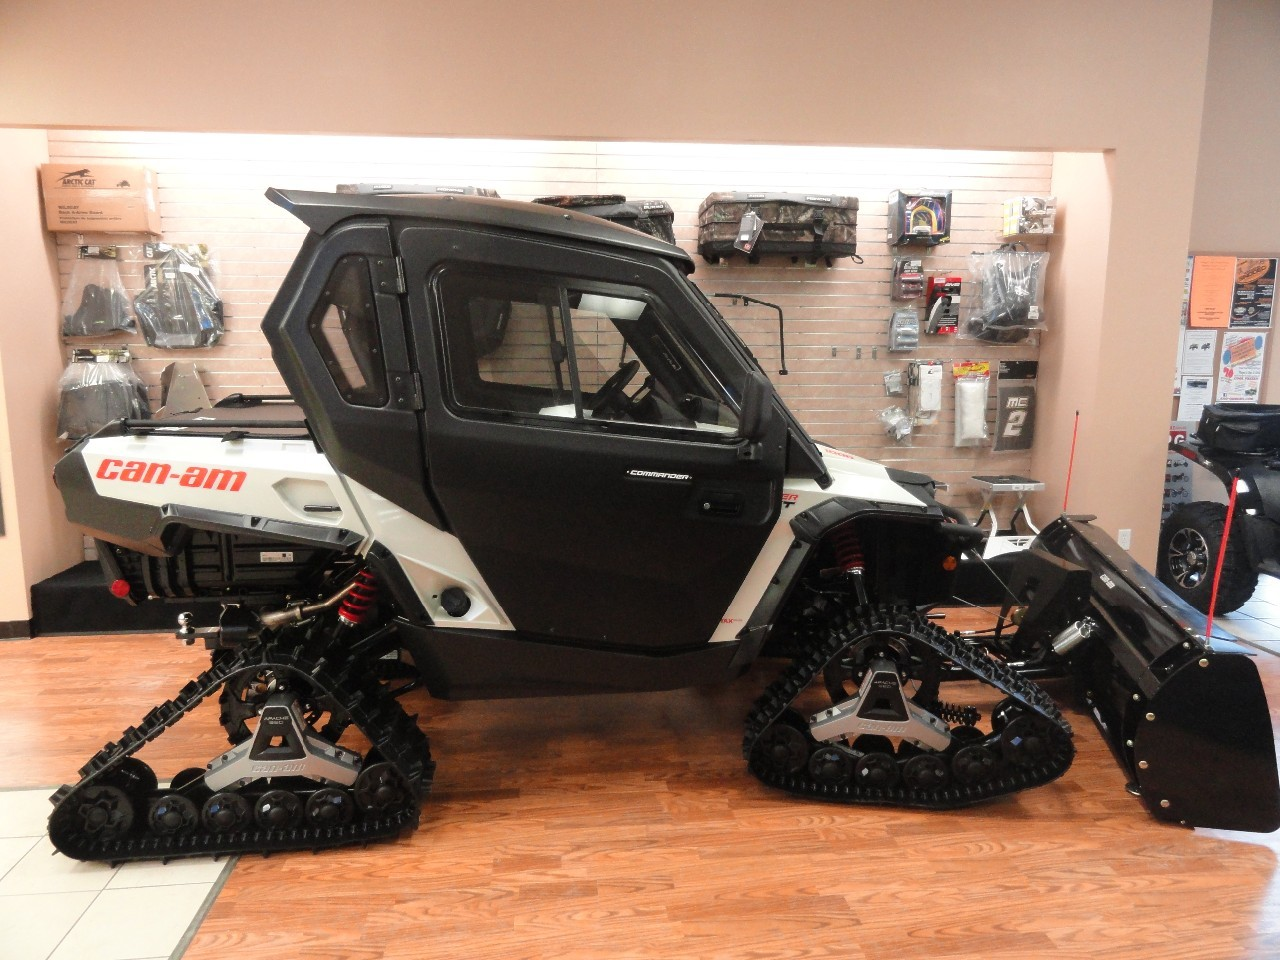 Can Am Commander For Sale >> Page 7653, 2015 Can-Am COMMANDER XT 1000 UTV/Utility, New and Used Can-Am Motorcycles Prices $32,999